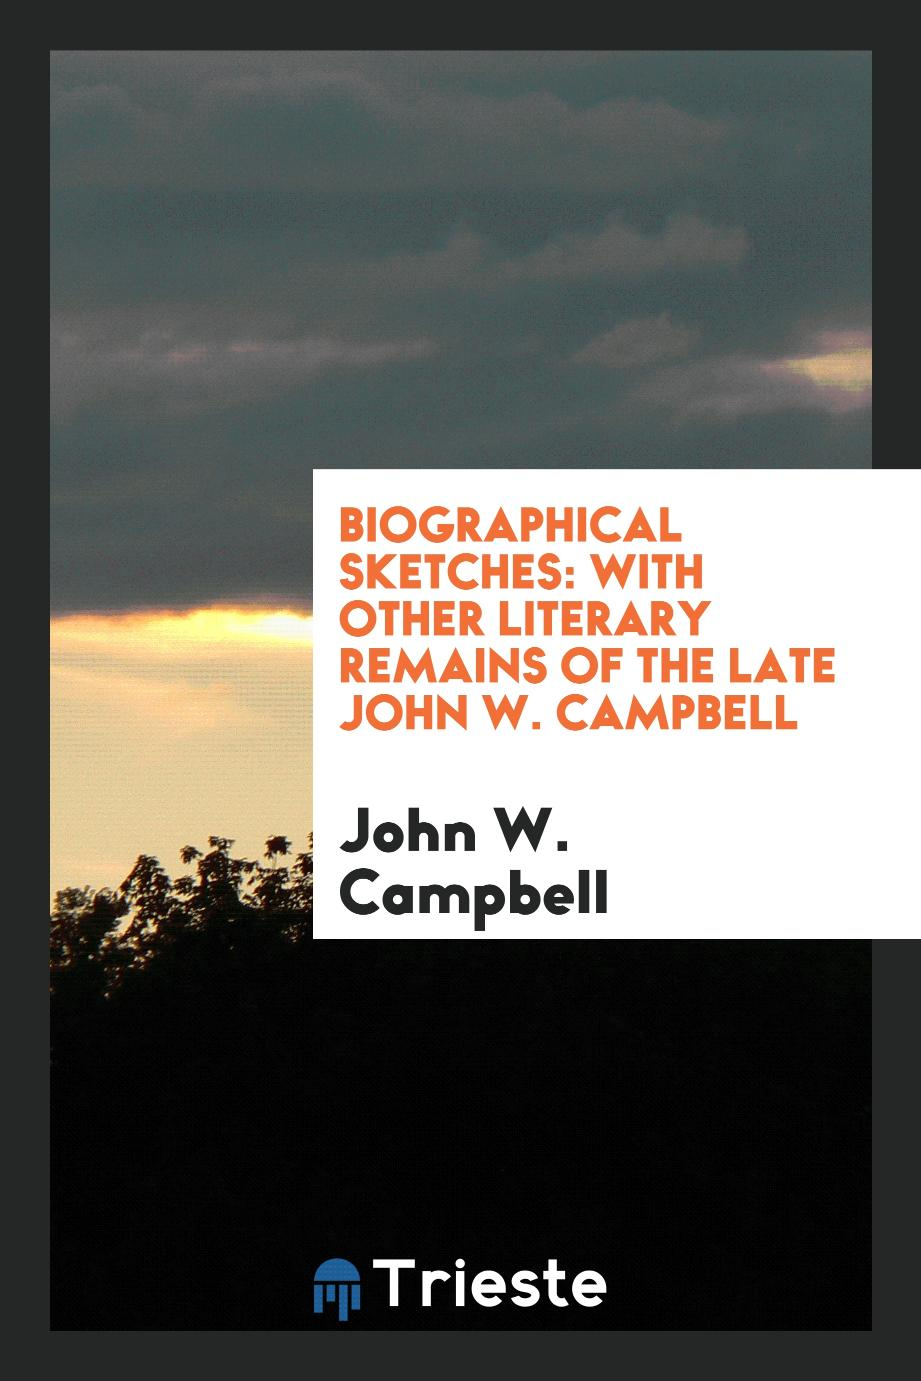 Biographical Sketches: With Other Literary Remains of the Late John W. Campbell